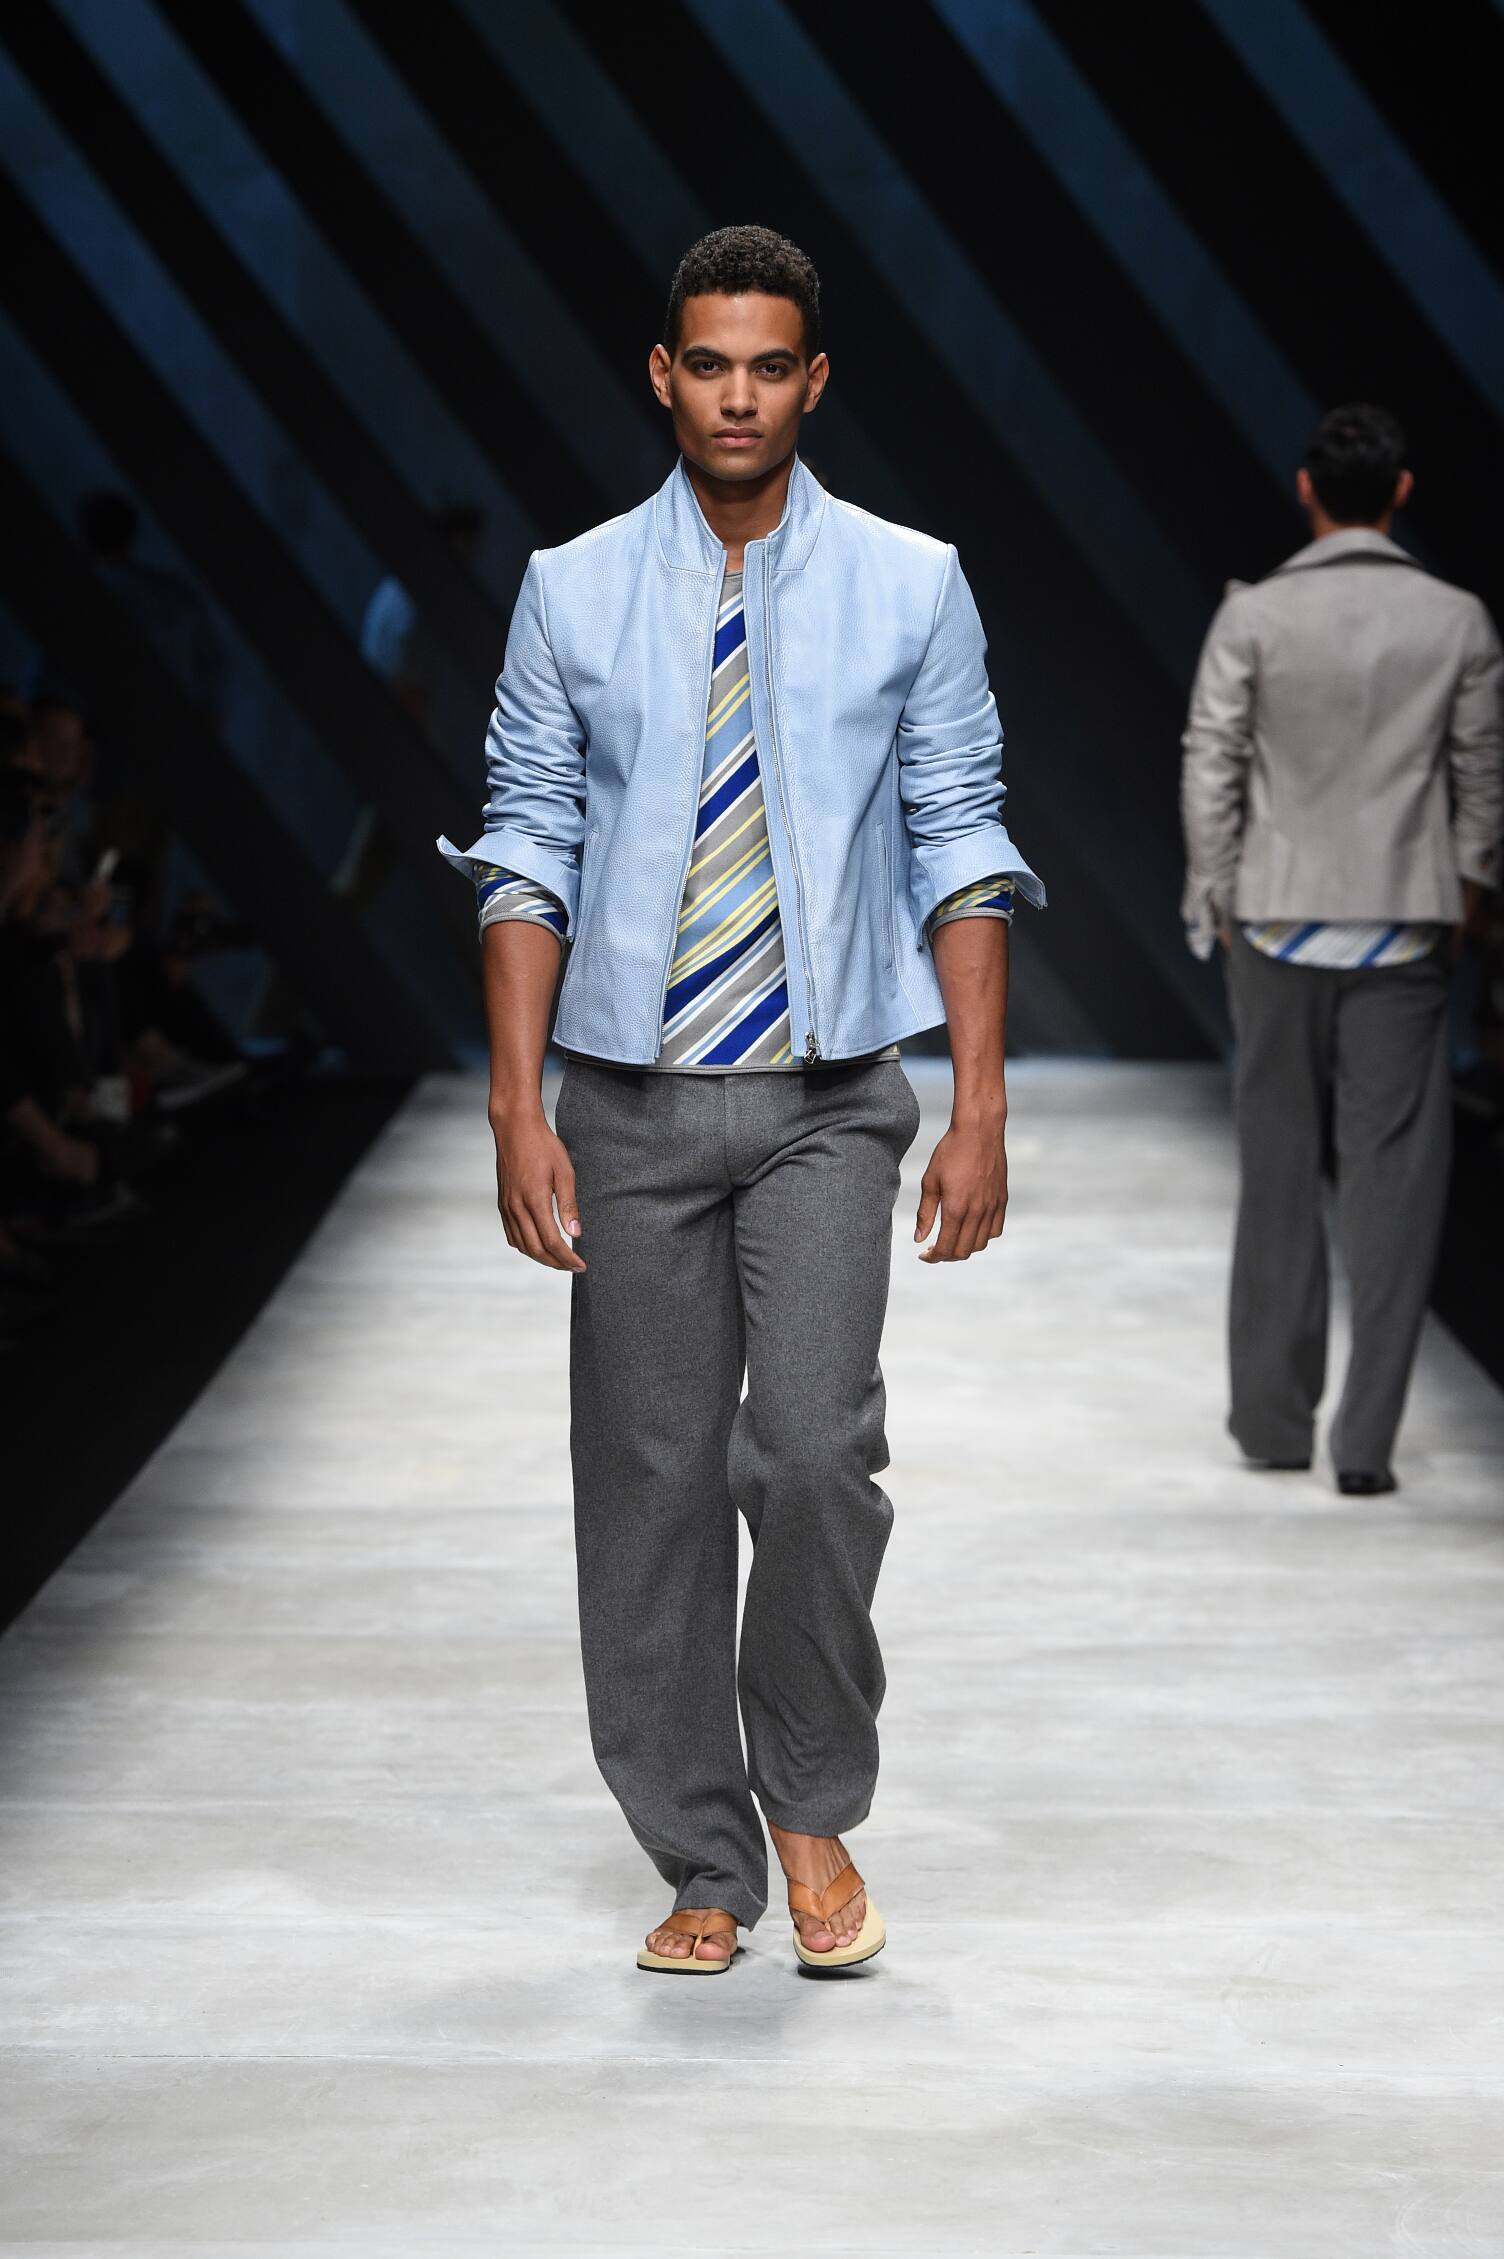 Fashion Show SS 2016 Ermanno Scervino Menswear